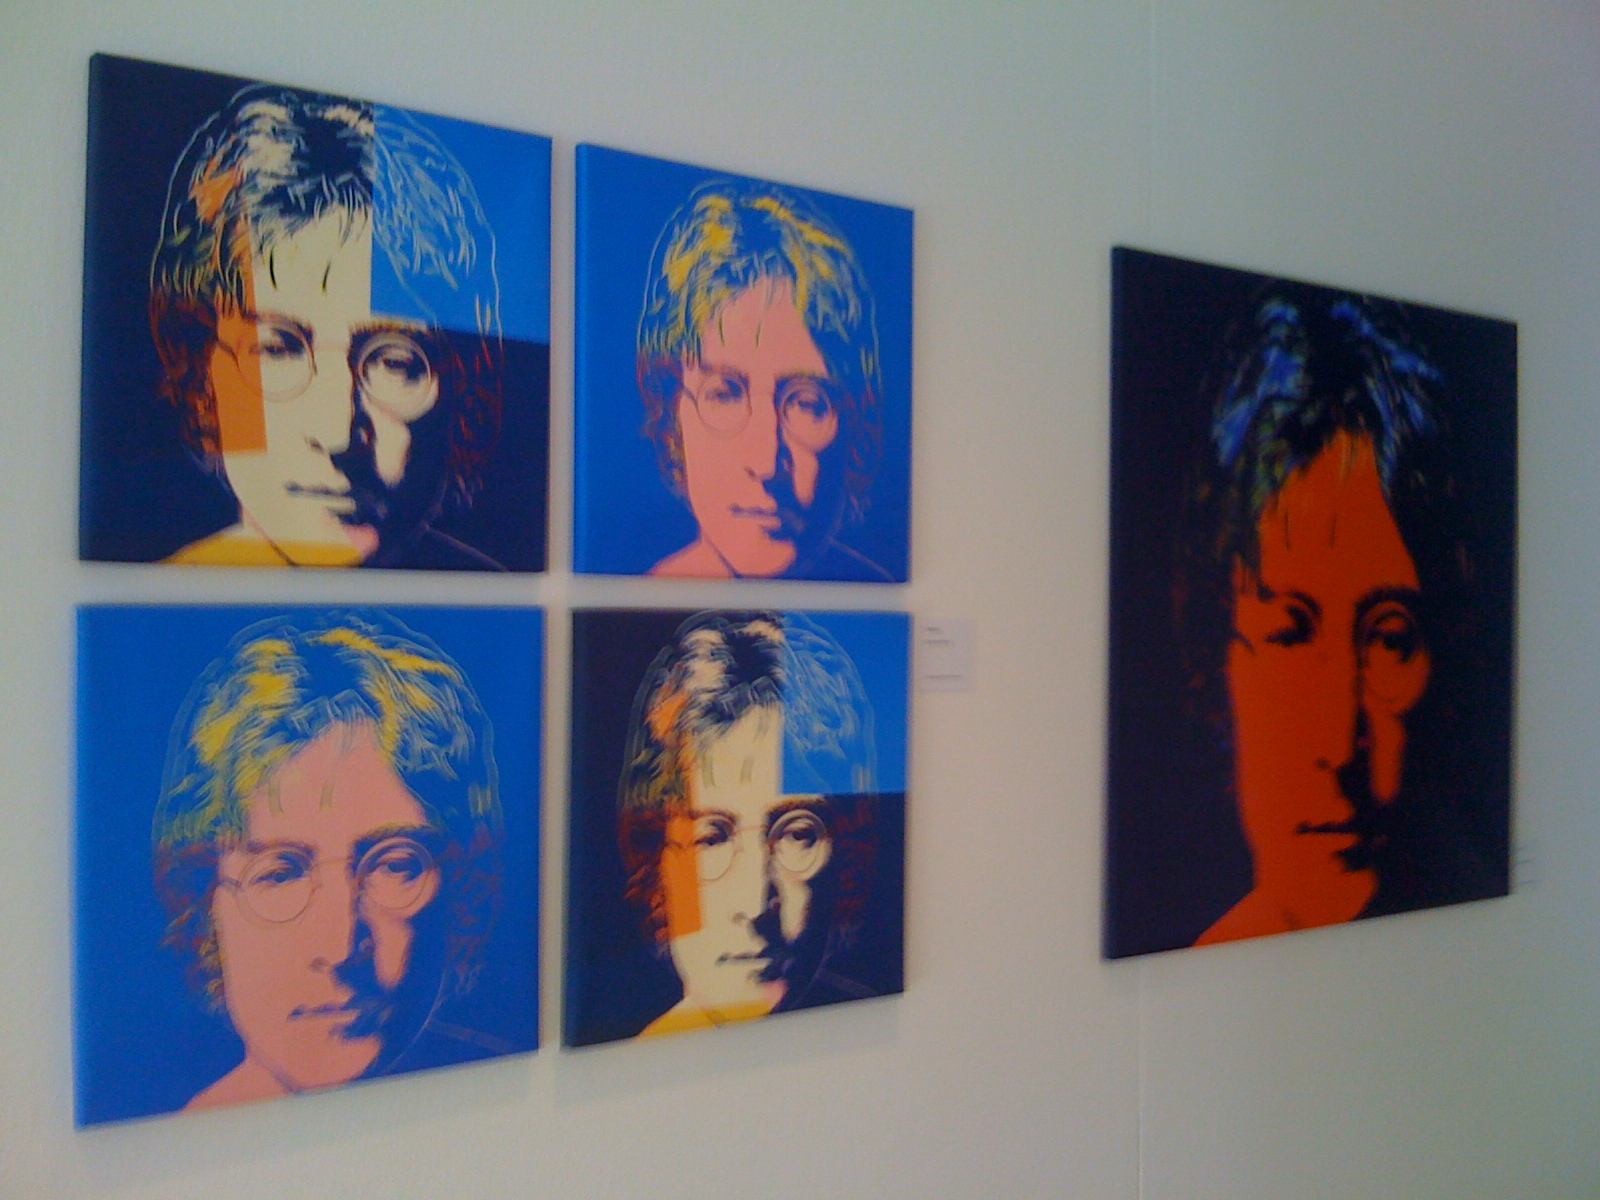 Pop meets Pop – Andy Warhol meets the Beatles